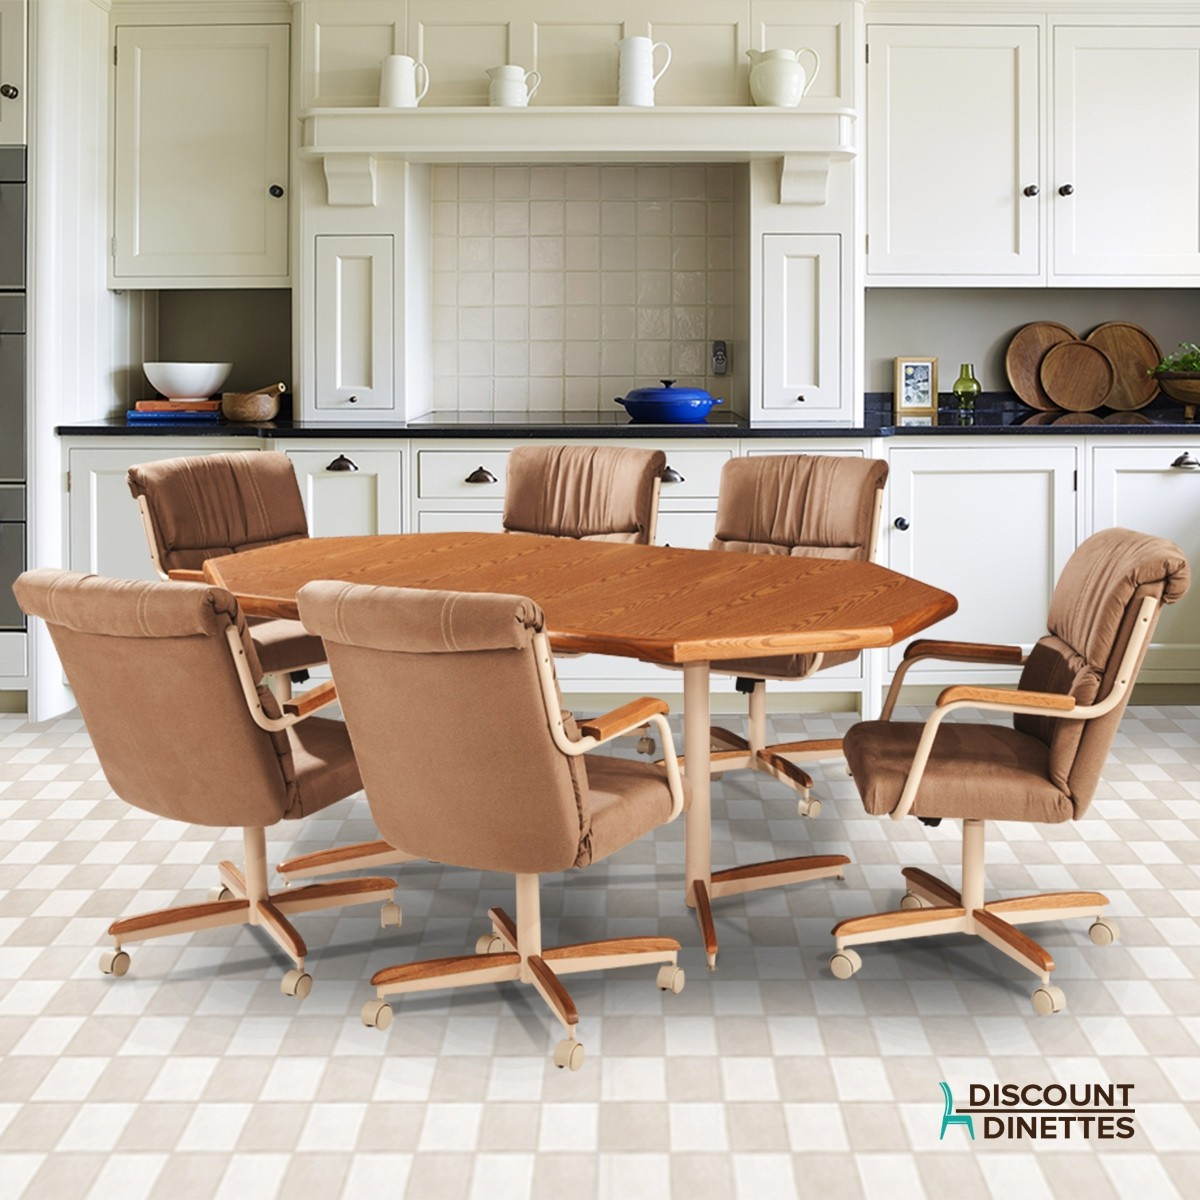 Casual Kitchen Chairs: Kitchen Dinettes With Casters